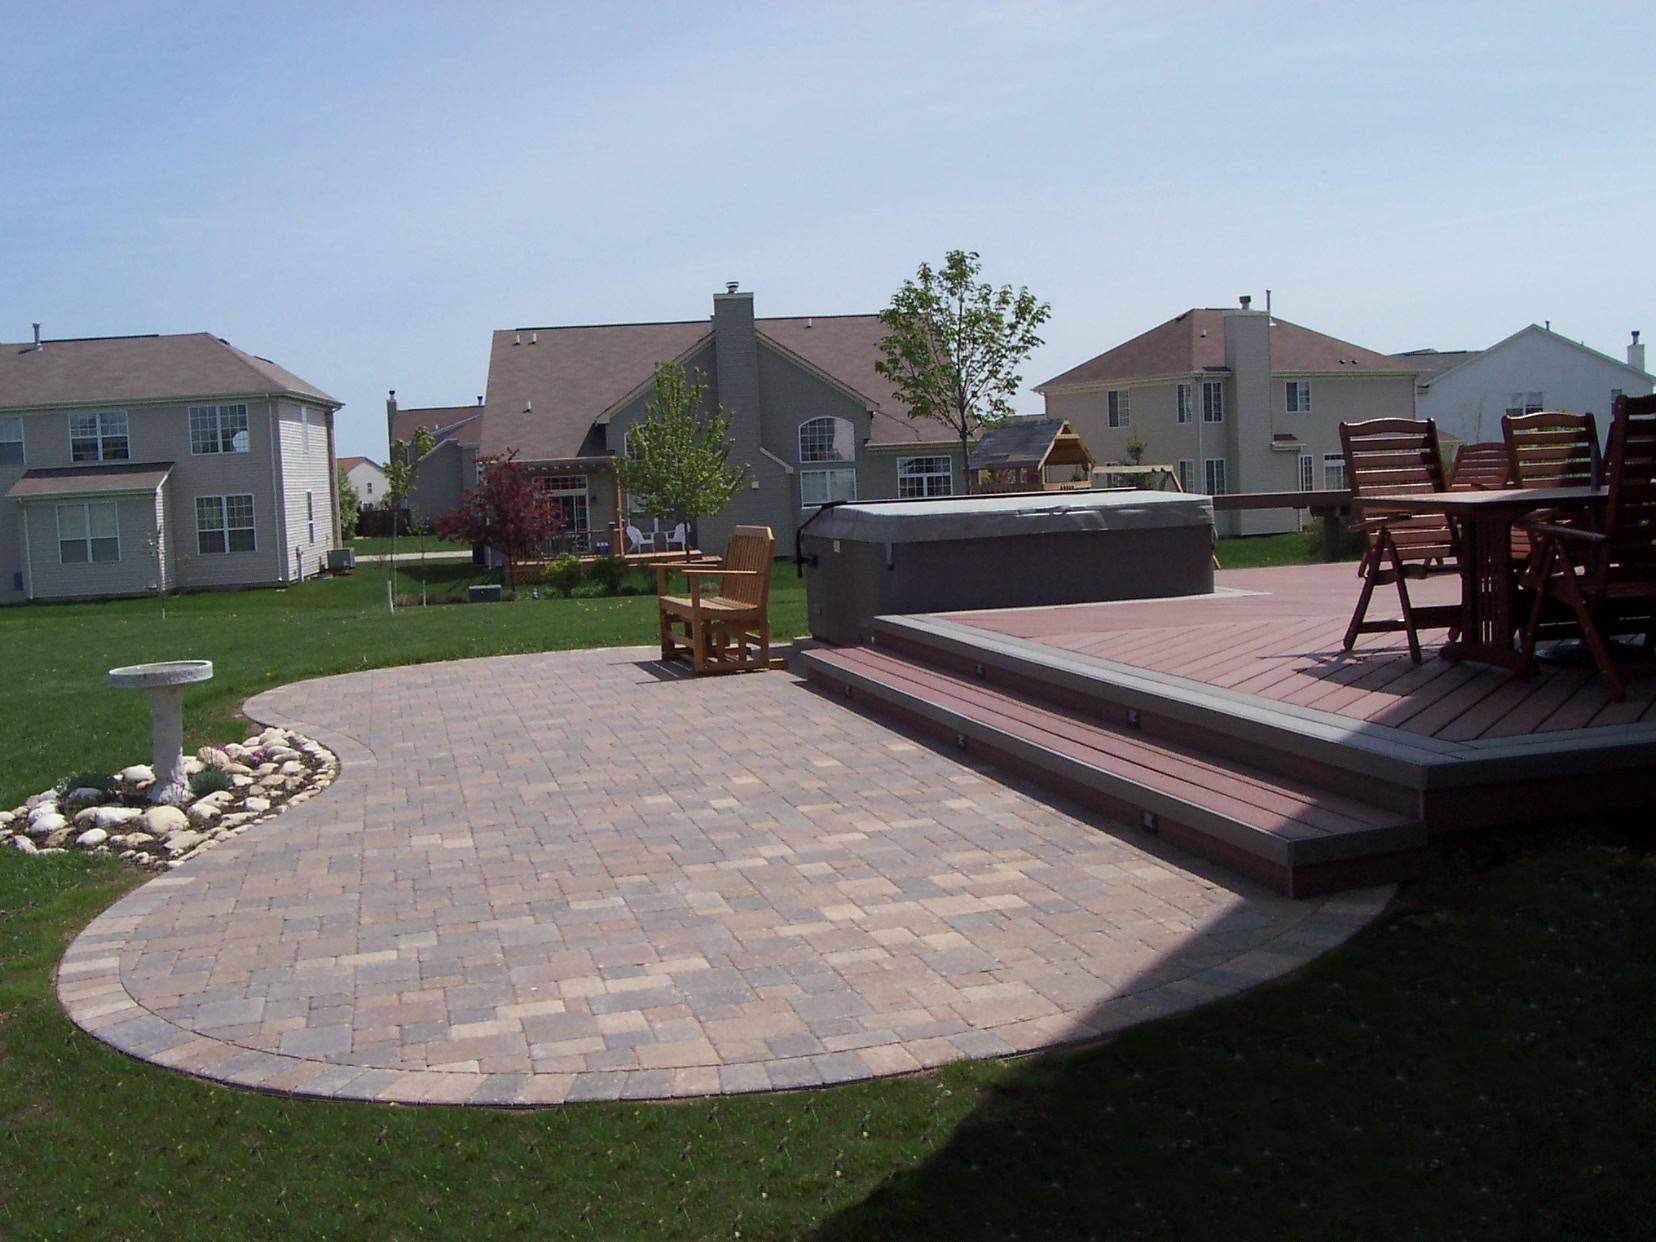 paver patios design and installation columbus ? columbus decks ... - Deck And Patio Design